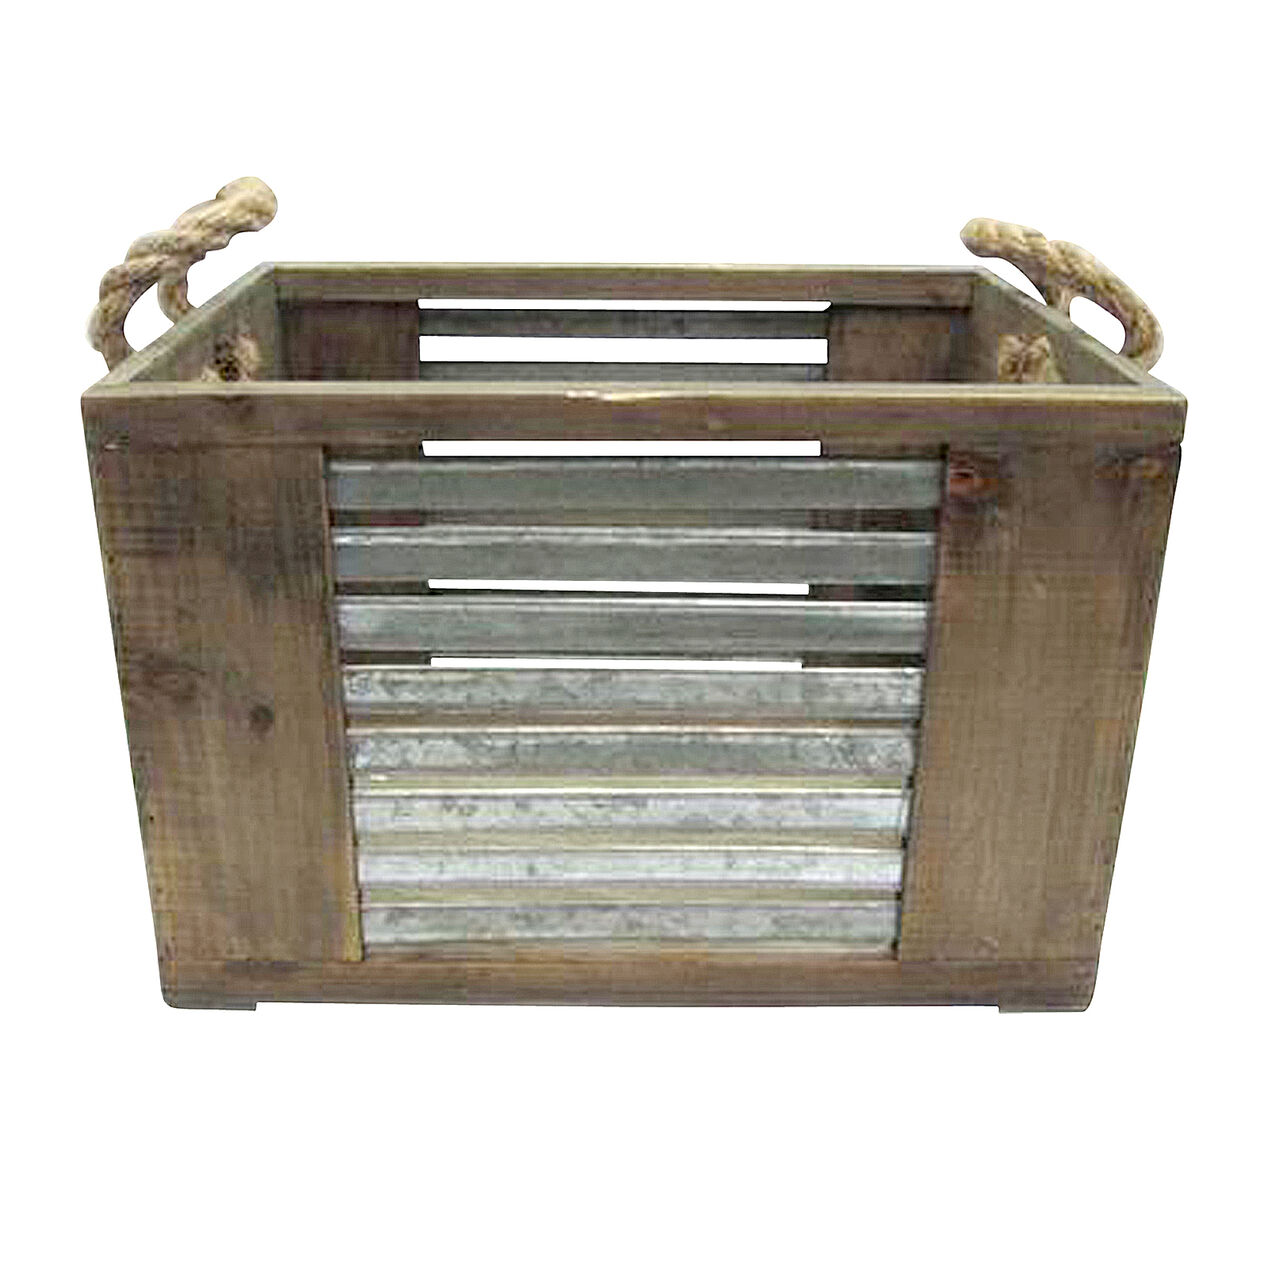 Wooden Crate With Handles Wood Crate W Metal Stripes And Rope Handles At Home